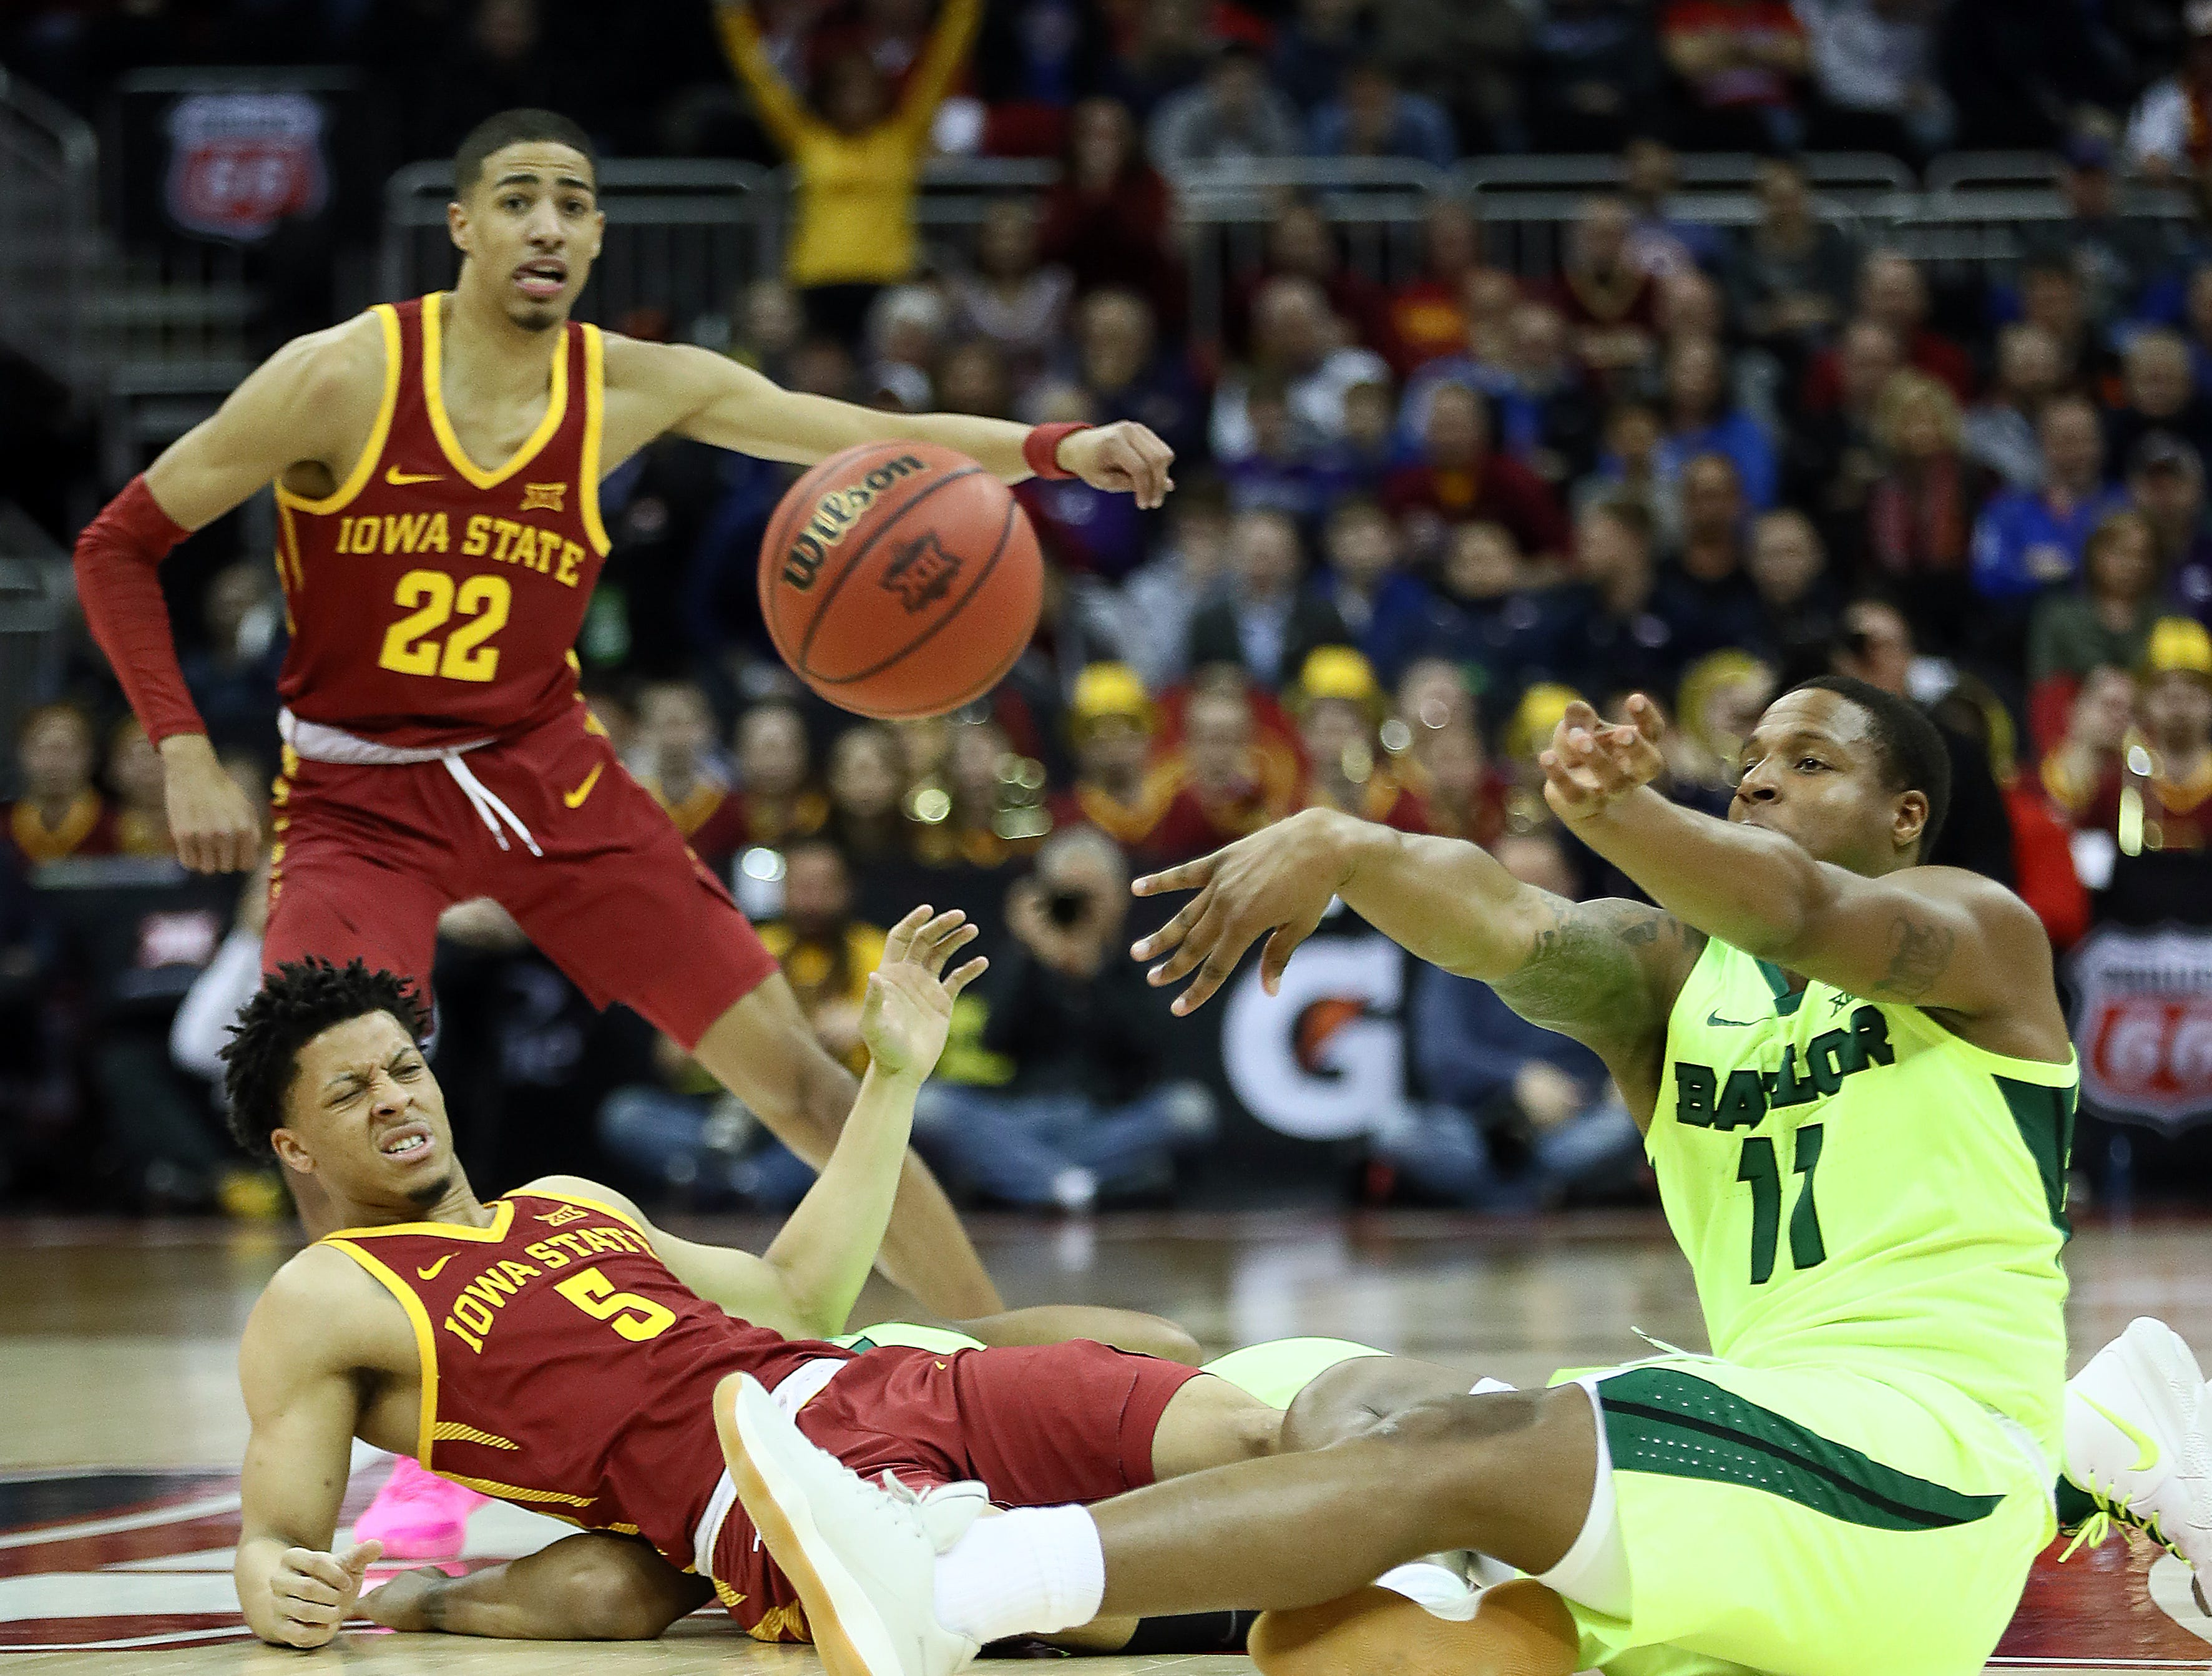 KANSAS CITY, MISSOURI - MARCH 14:  Mark Vital #11 of the Baylor Bears passes over Lindell Wigginton #5 of the Iowa State Cyclones after recovering a loose ball during the quarterfinal game of the Big 12 Basketball Tournament at Sprint Center on March 14, 2019 in Kansas City, Missouri. (Photo by Jamie Squire/Getty Images)